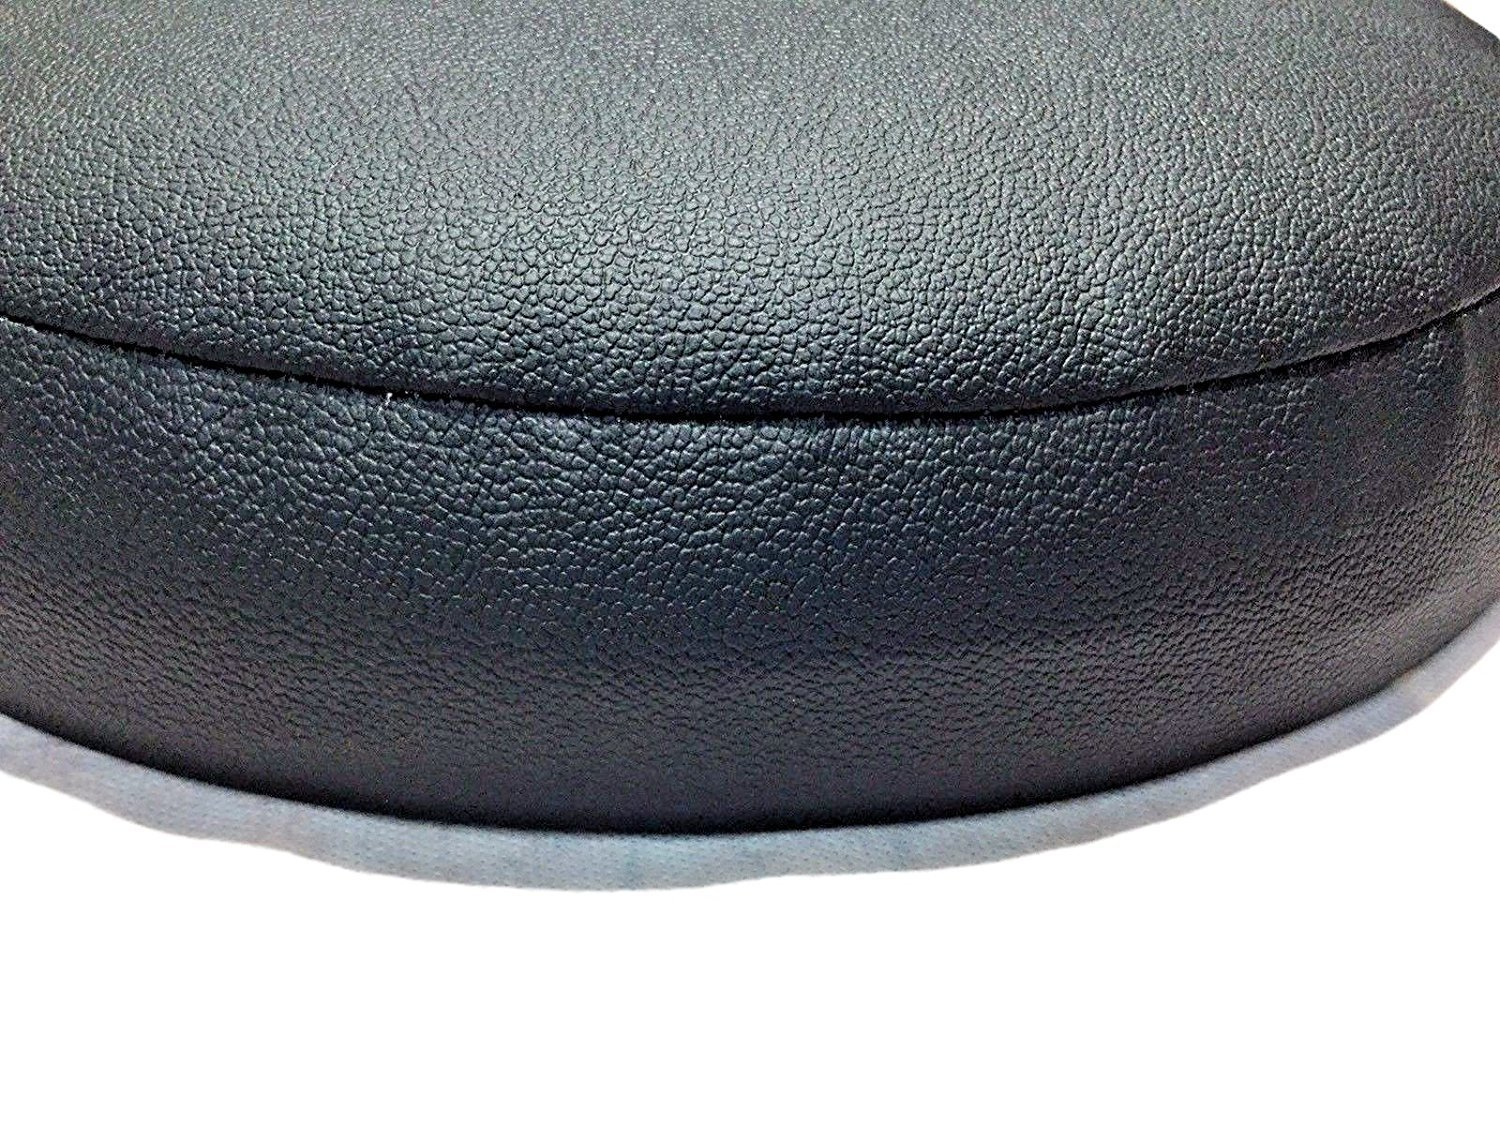 Bar Stool Covers 4 Less BAR STOOL COVER For Kitchen Pub Exam Office - EASY SLIP ON - Vinyl Replacement Seat Top With Extra Thin Padding & Elastic Band (15 inch Diameter, Black) by Bar Stool Covers 4 Less (Image #10)